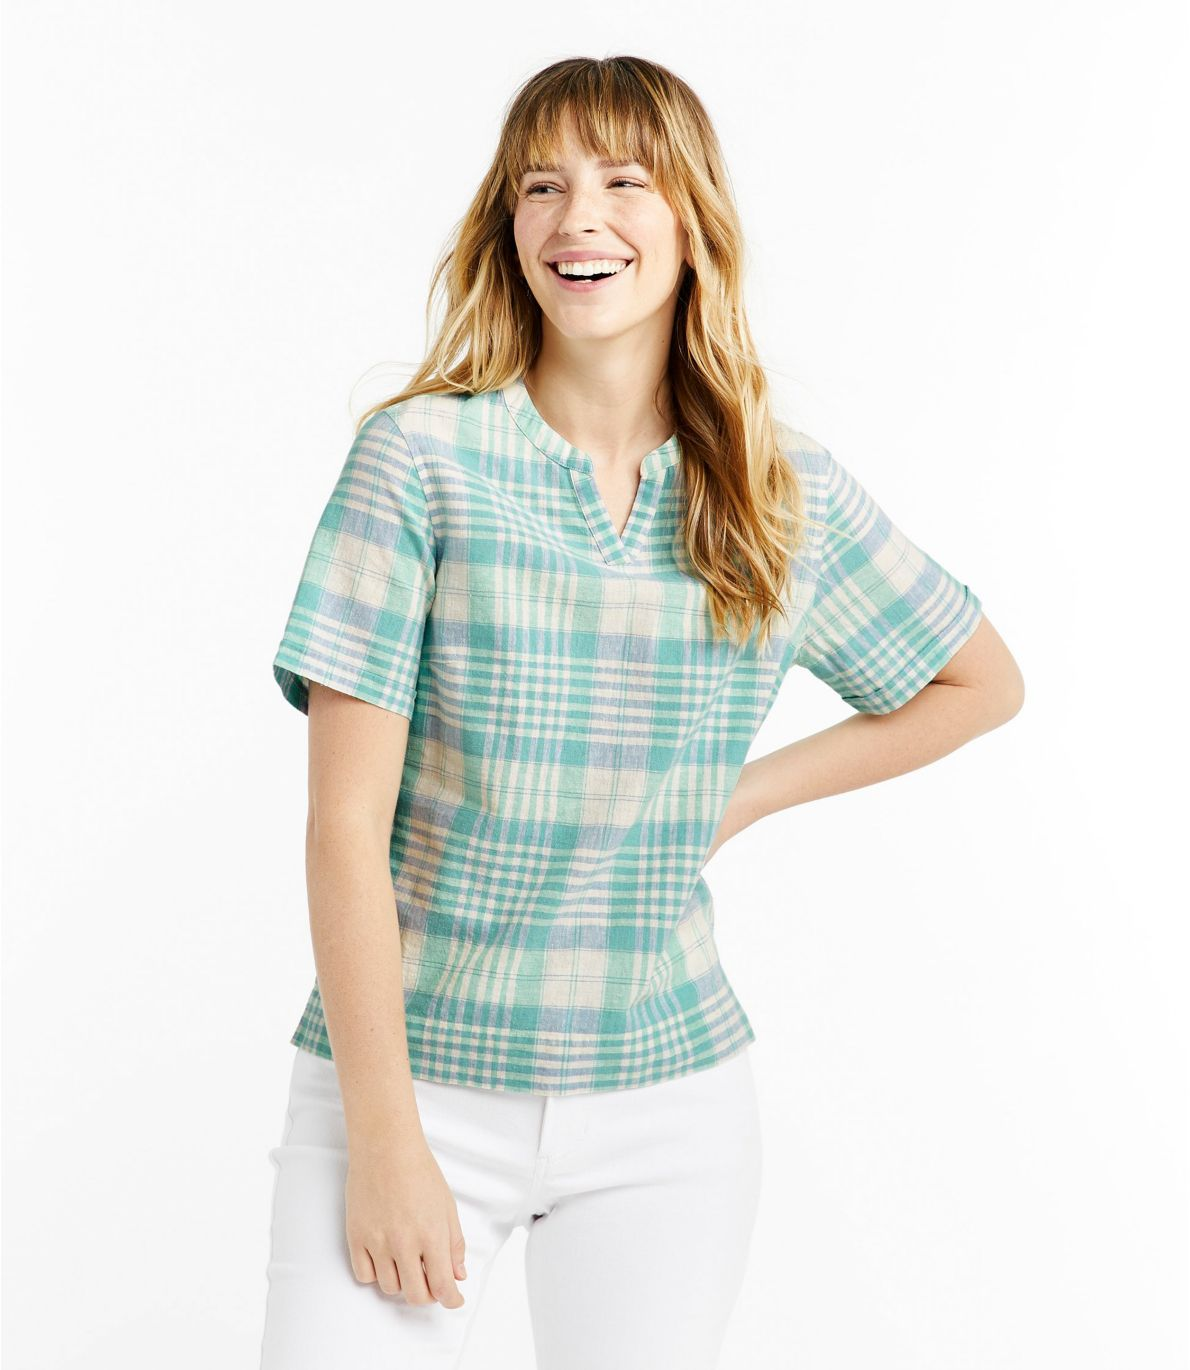 Women's Textured Linen/Cotton Shirt, Short-Sleeve Plaid